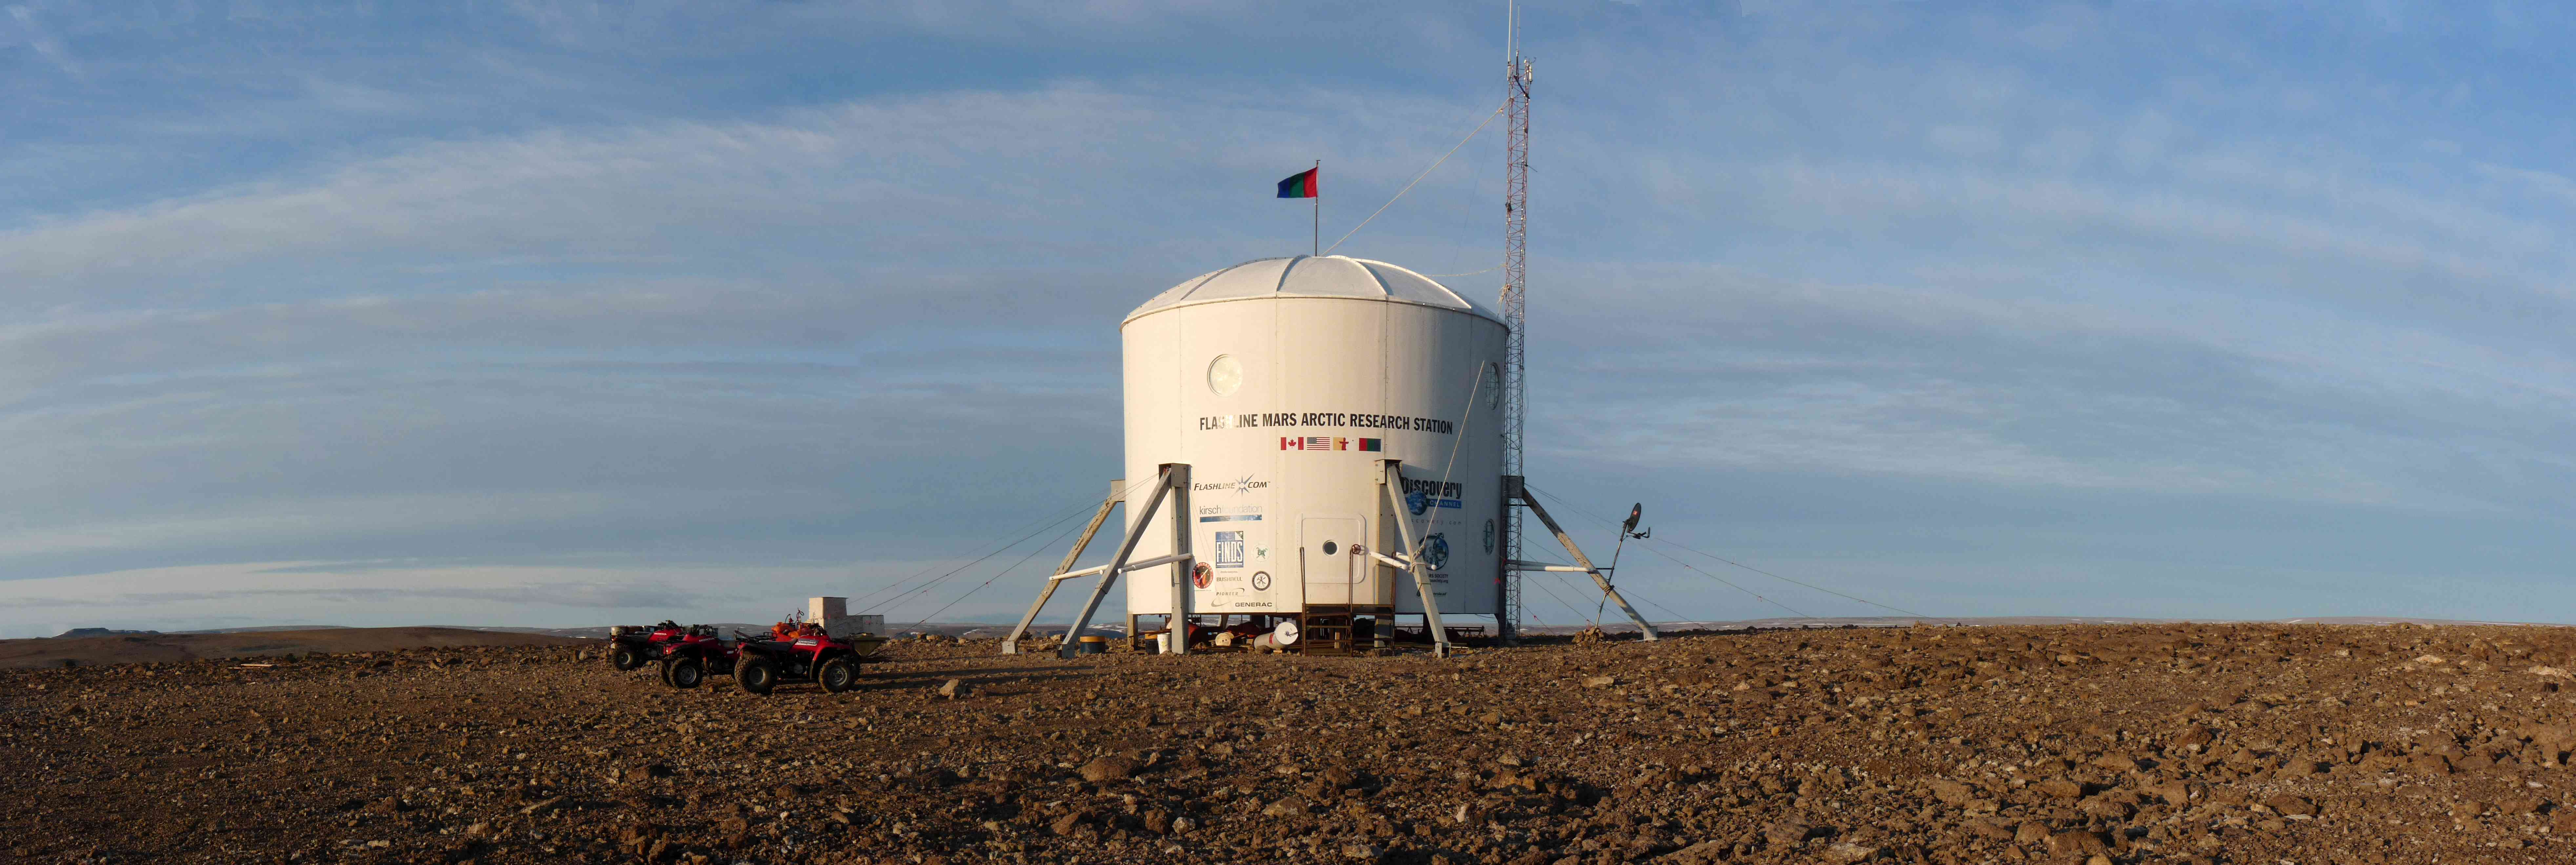 The Flashline Mars Arctic Research Station in 2009